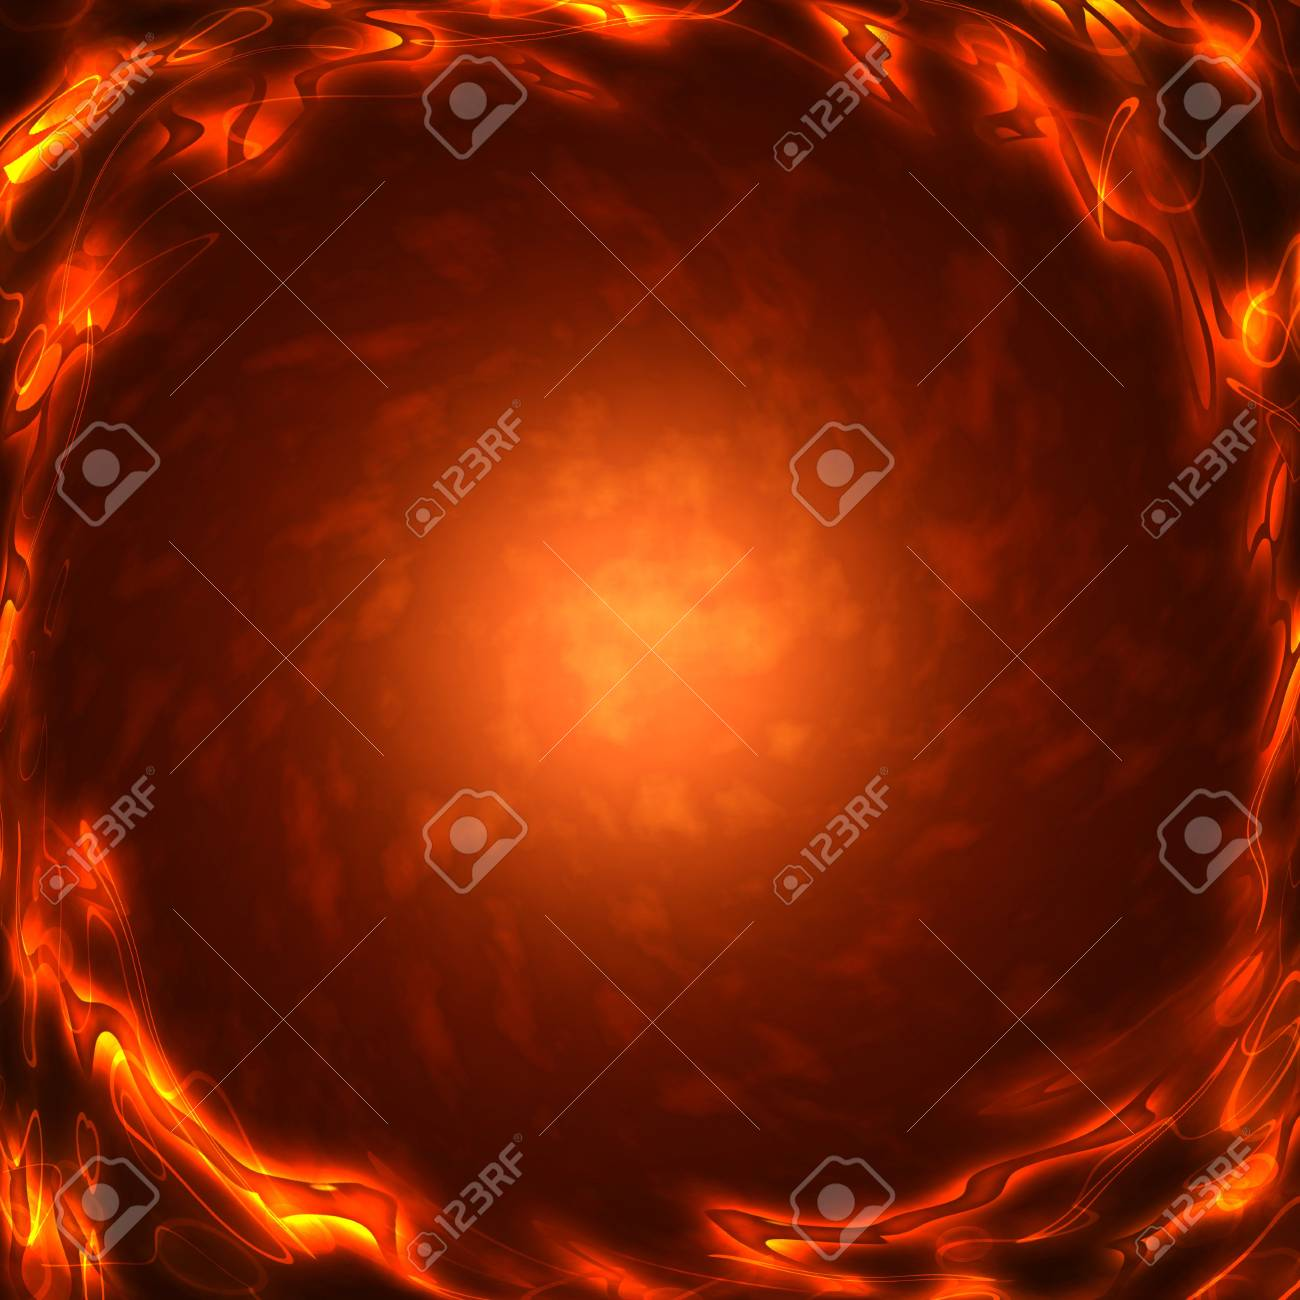 frame of the burning elements, abstract background Stock Photo - 16340470